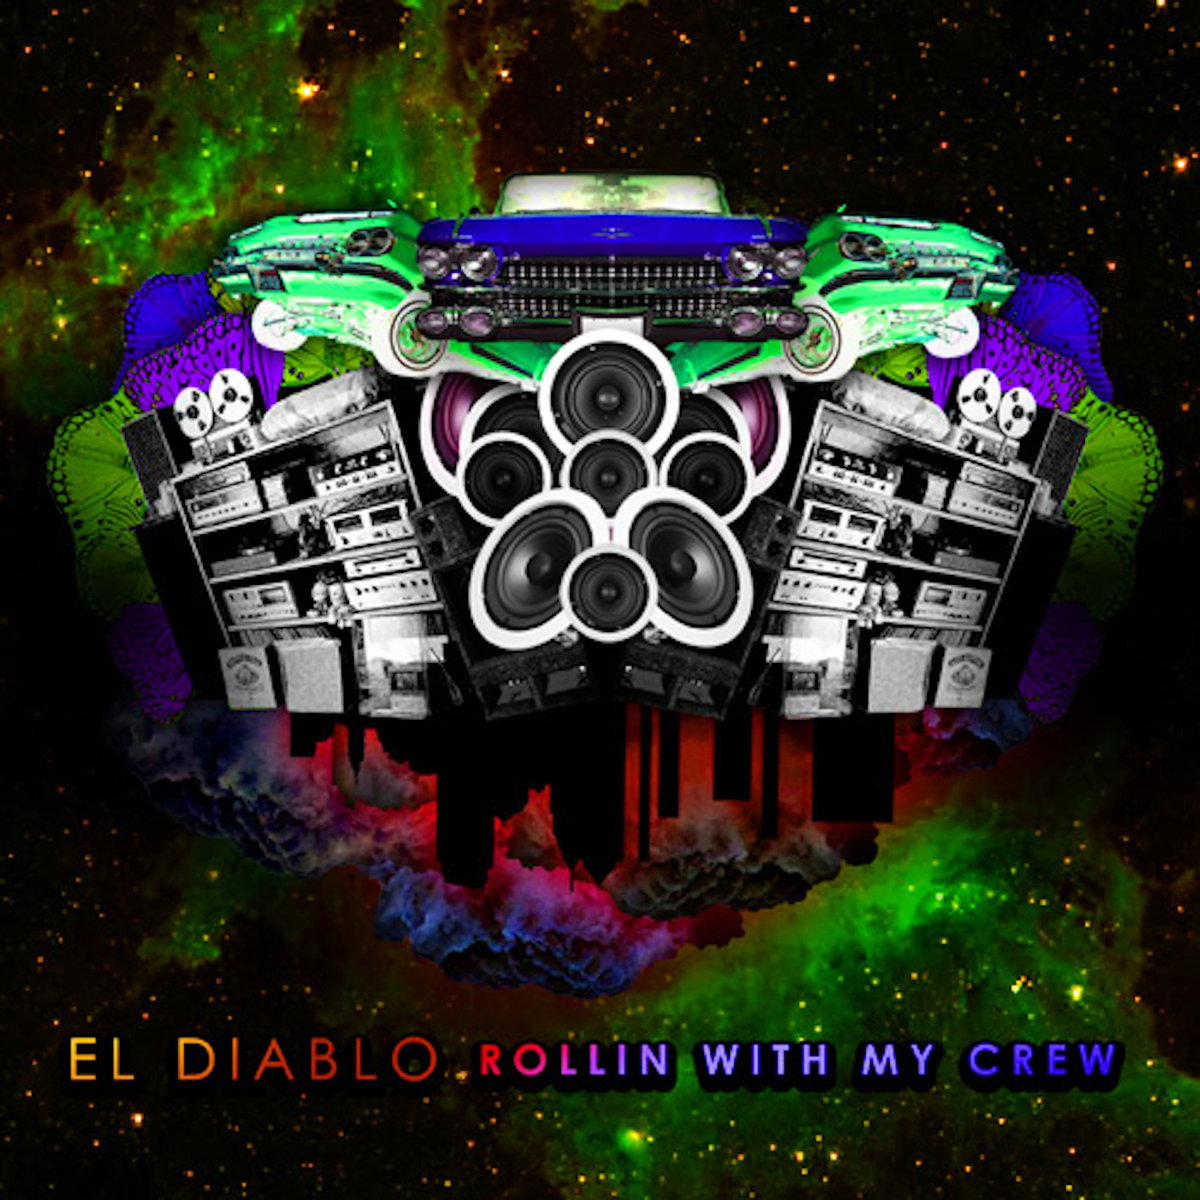 El Diablo & CI - Come & Get IT @ 'Rollin With My Crew' album (electronic, dubstep)